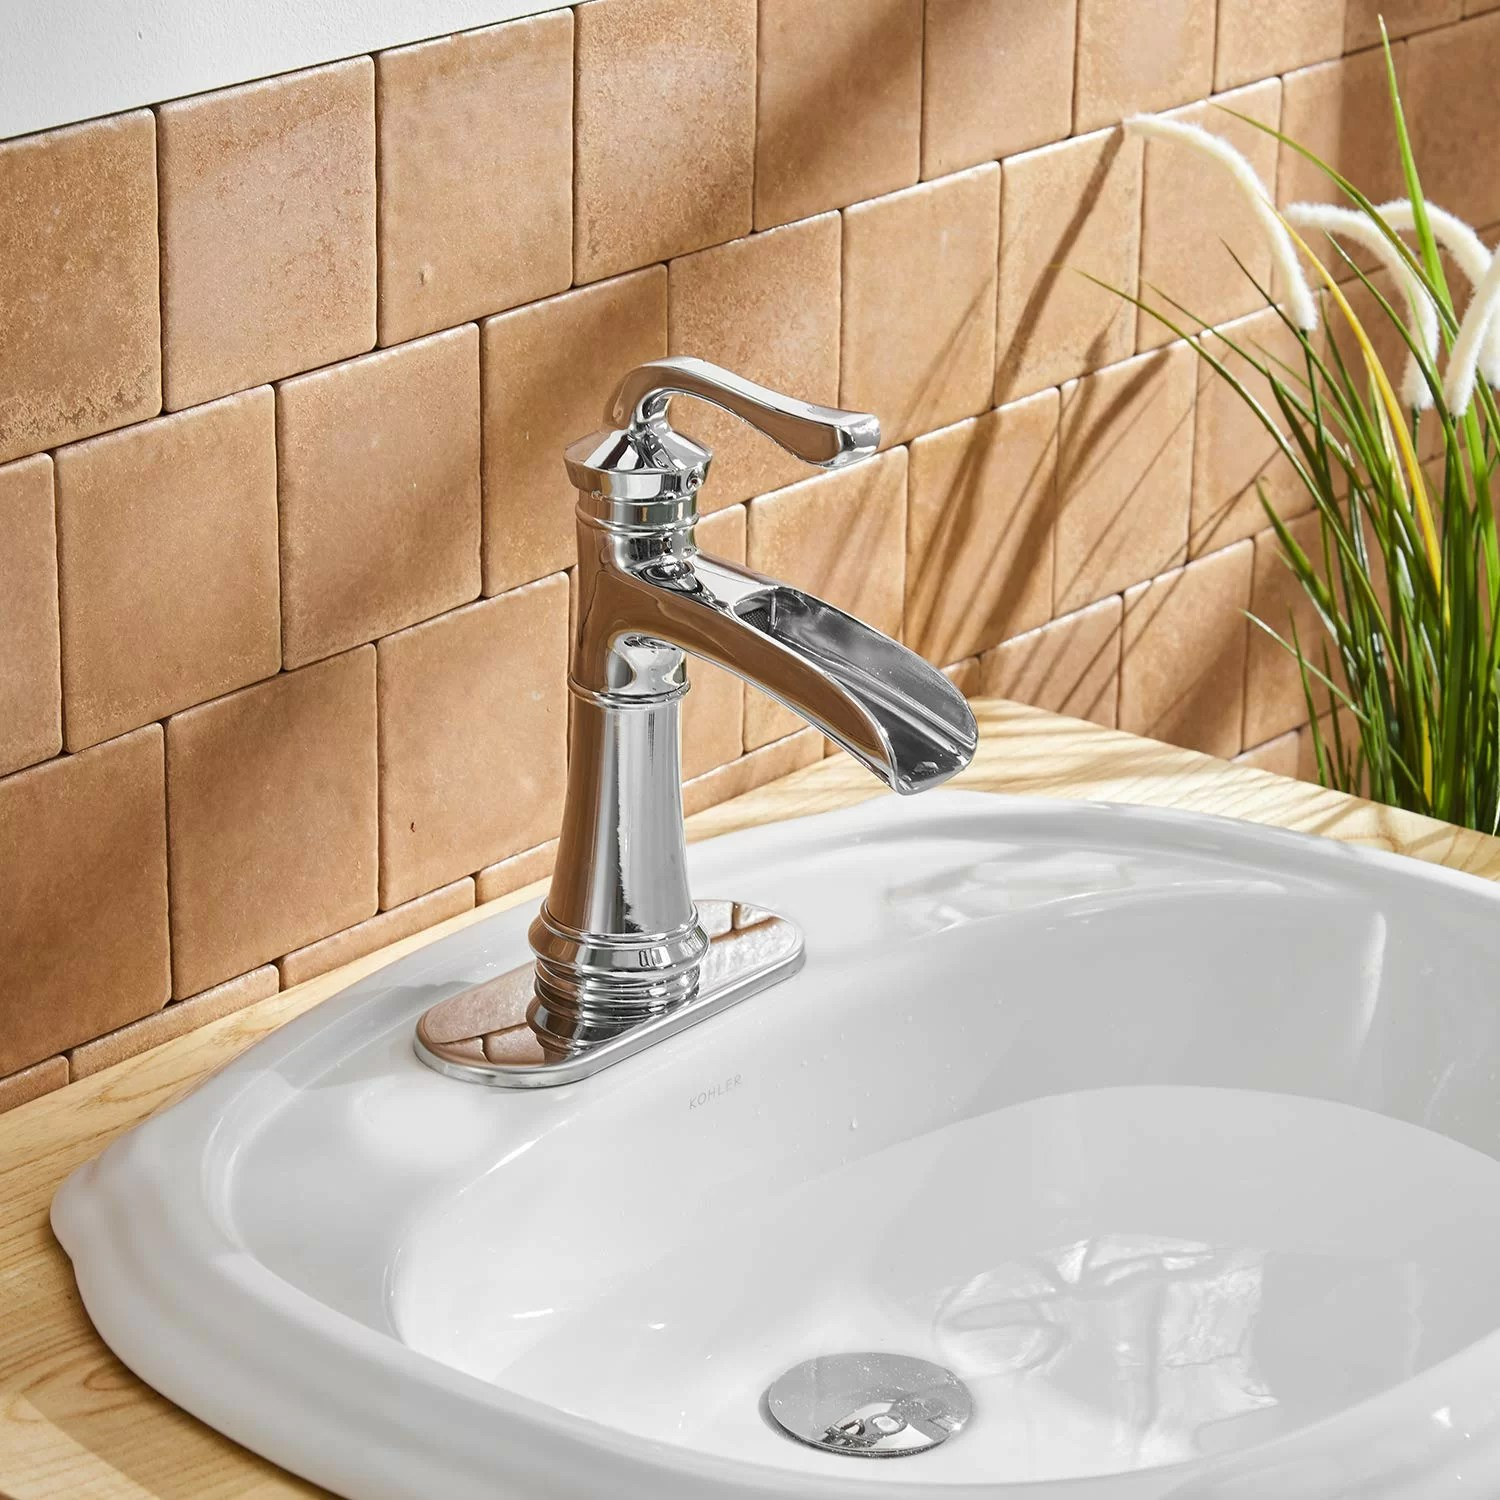 dfi chrome waterfall commercial single hole one handle bathroom sink faucet deck mount lavatory